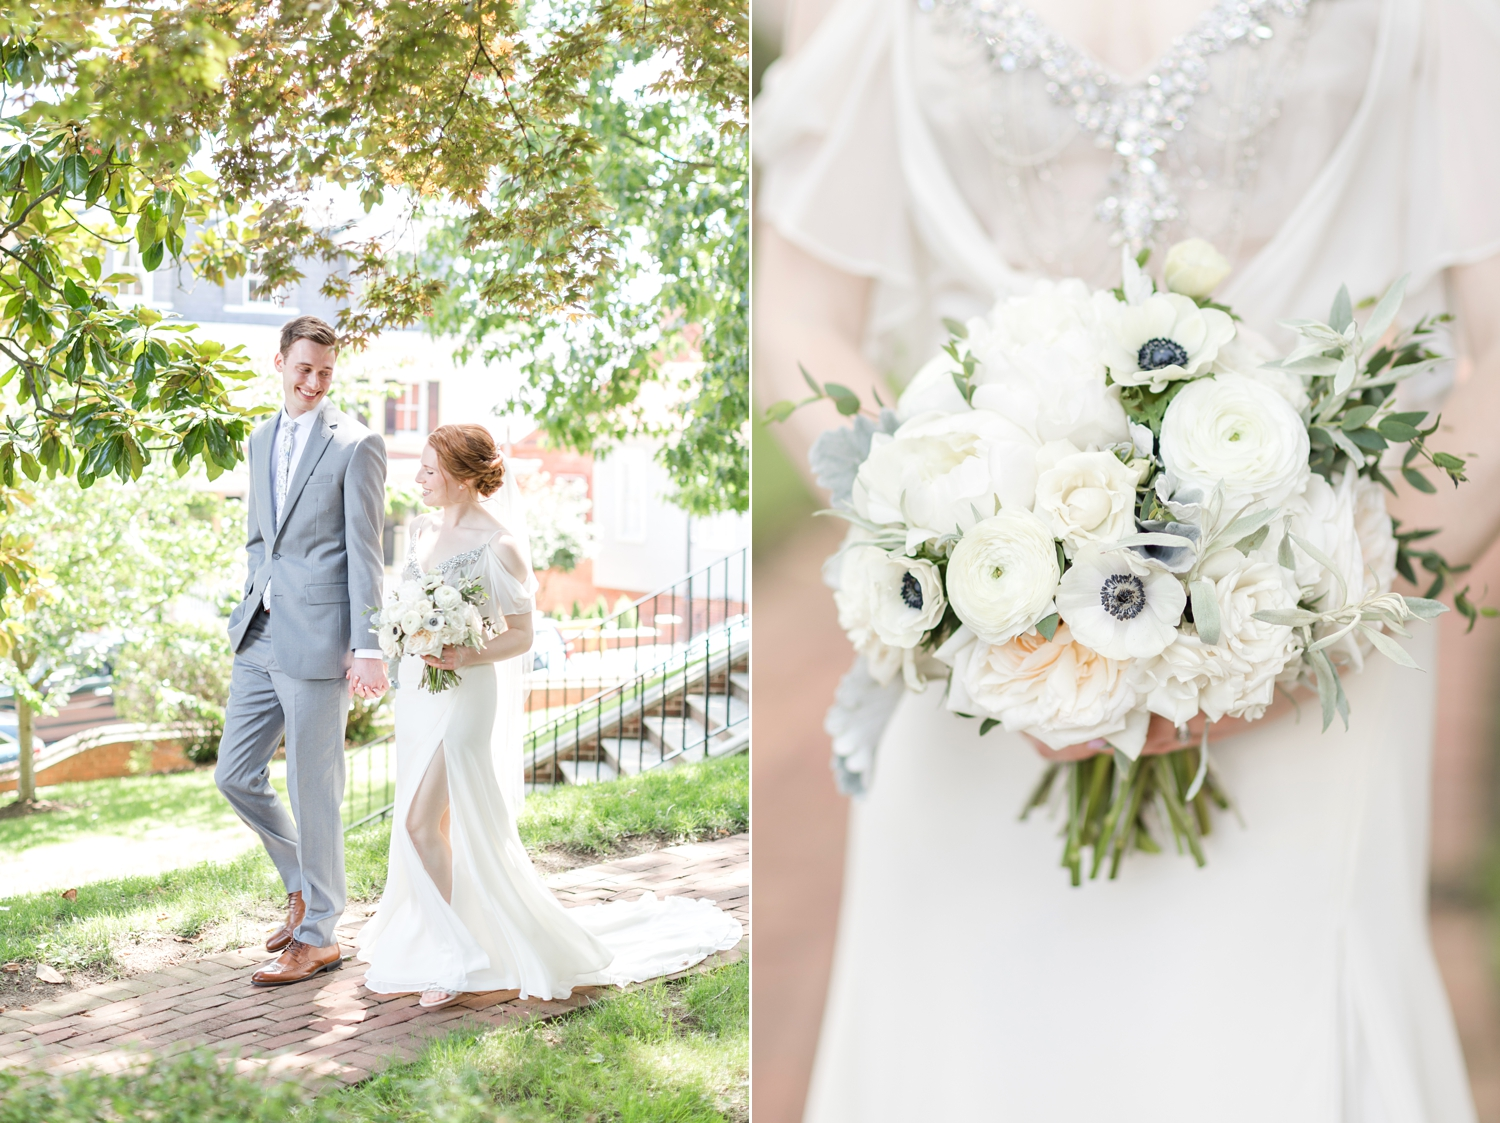 HOFFMAN WEDDING HIGHLIGHTS-150_William-Paca-House-Annapolis-Maryland-wedding-photographer-anna-grace-photography-photo.jpg